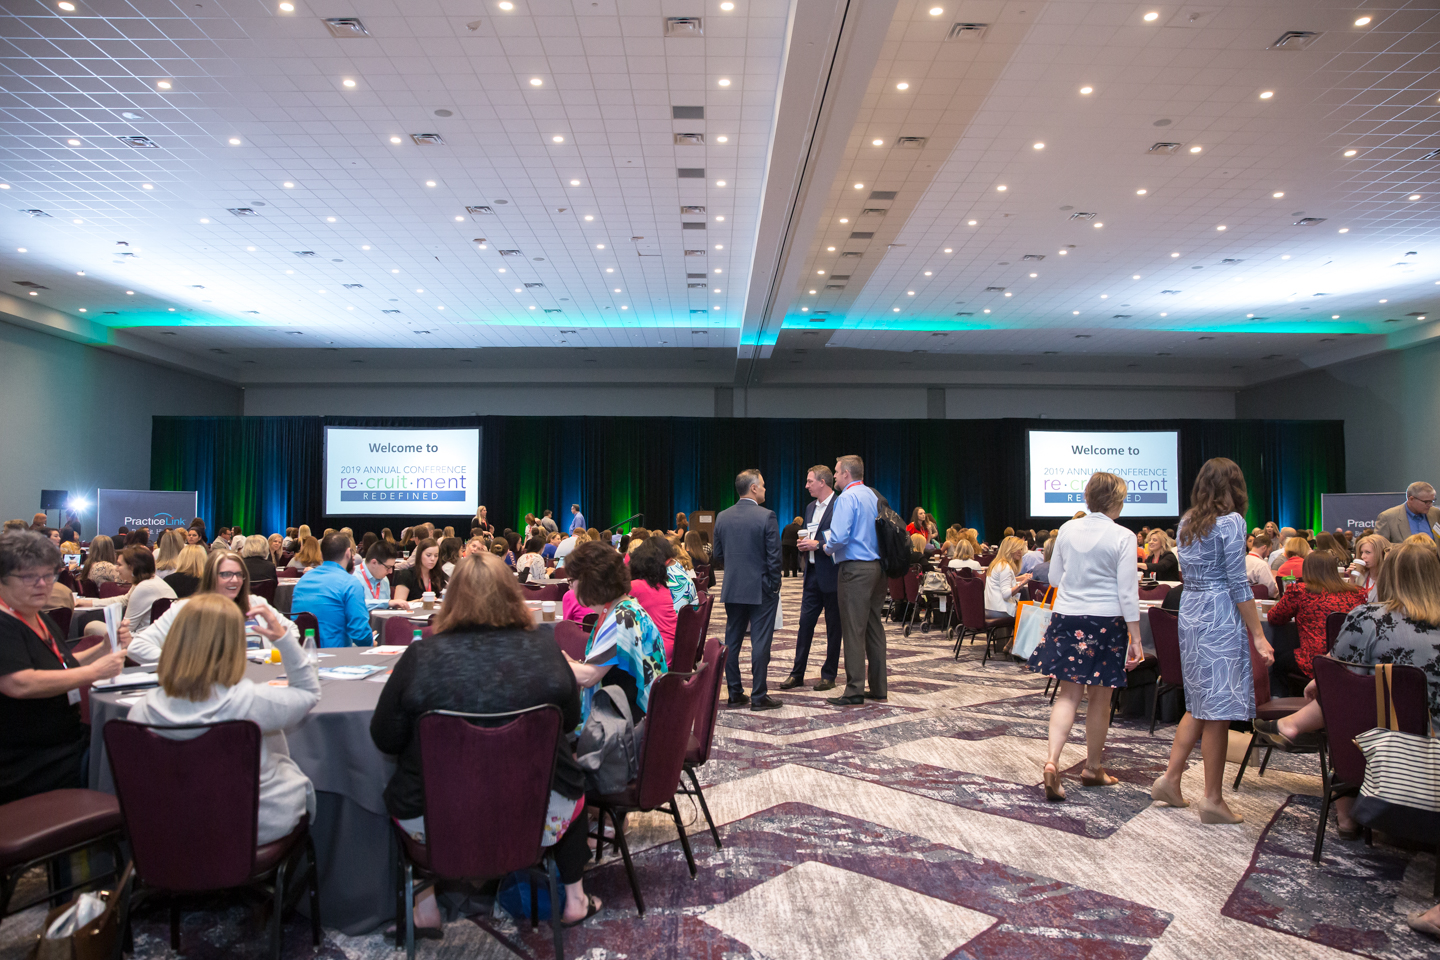 AAPPR-Conference-Expo-Professional-Event-Photography-Photographer-Orlando-lowes-sapphire-falls-resort-universal-3.jpg